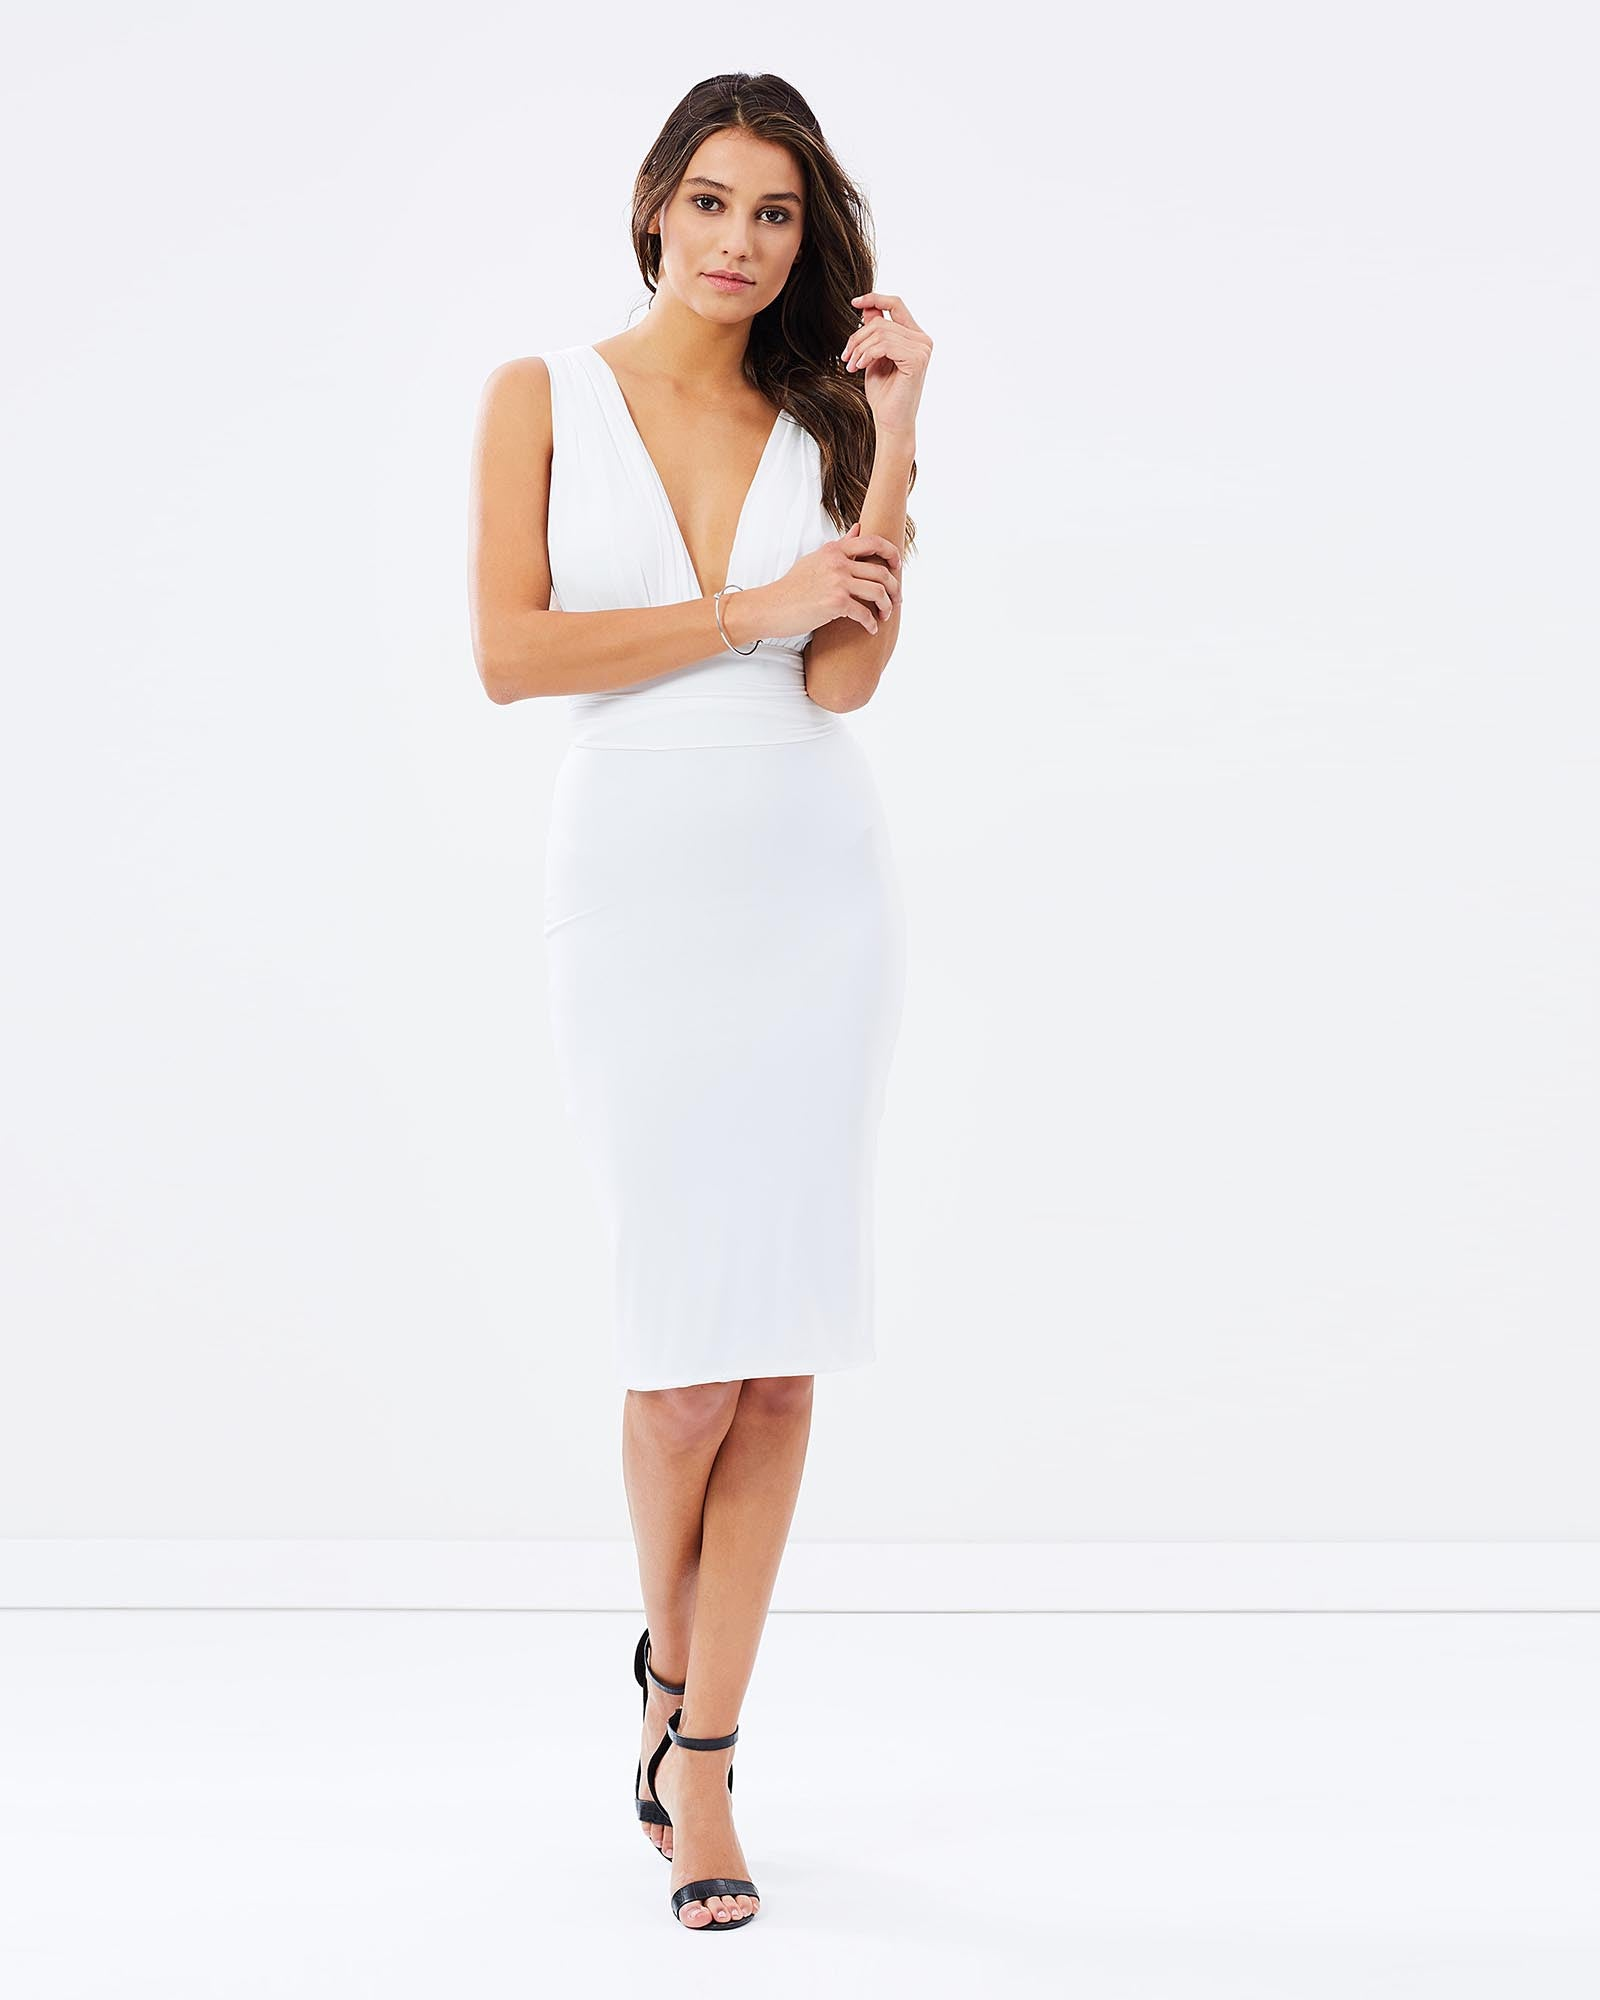 SKIVA cocktail dress white stretch fabric v neck open back shoulder straps zip pull on knee length midi party cocktail evening